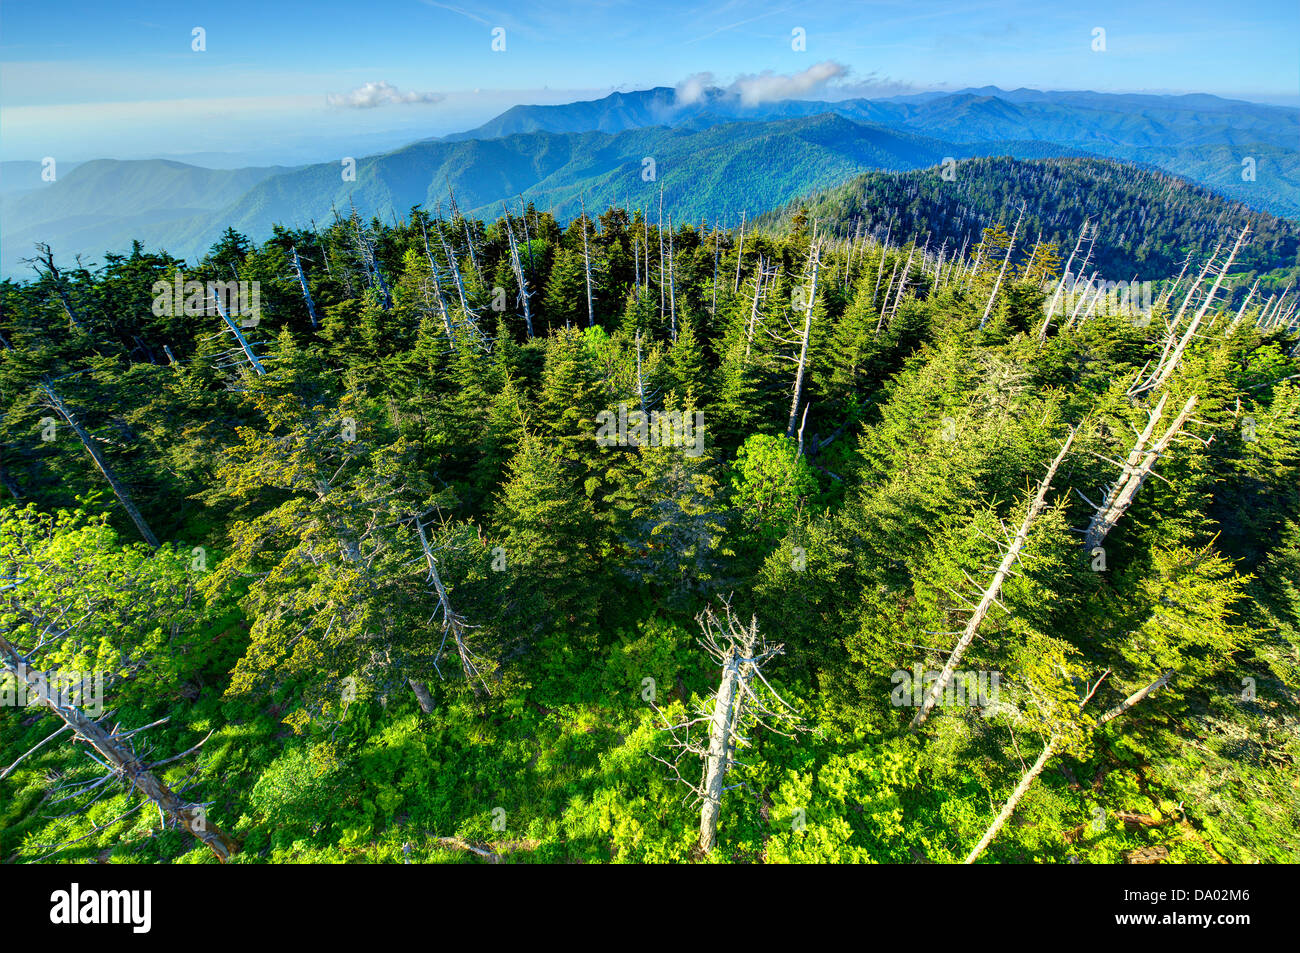 View from the observation deck of Clingman's Dome in the Great Smoky Mountains. - Stock Image